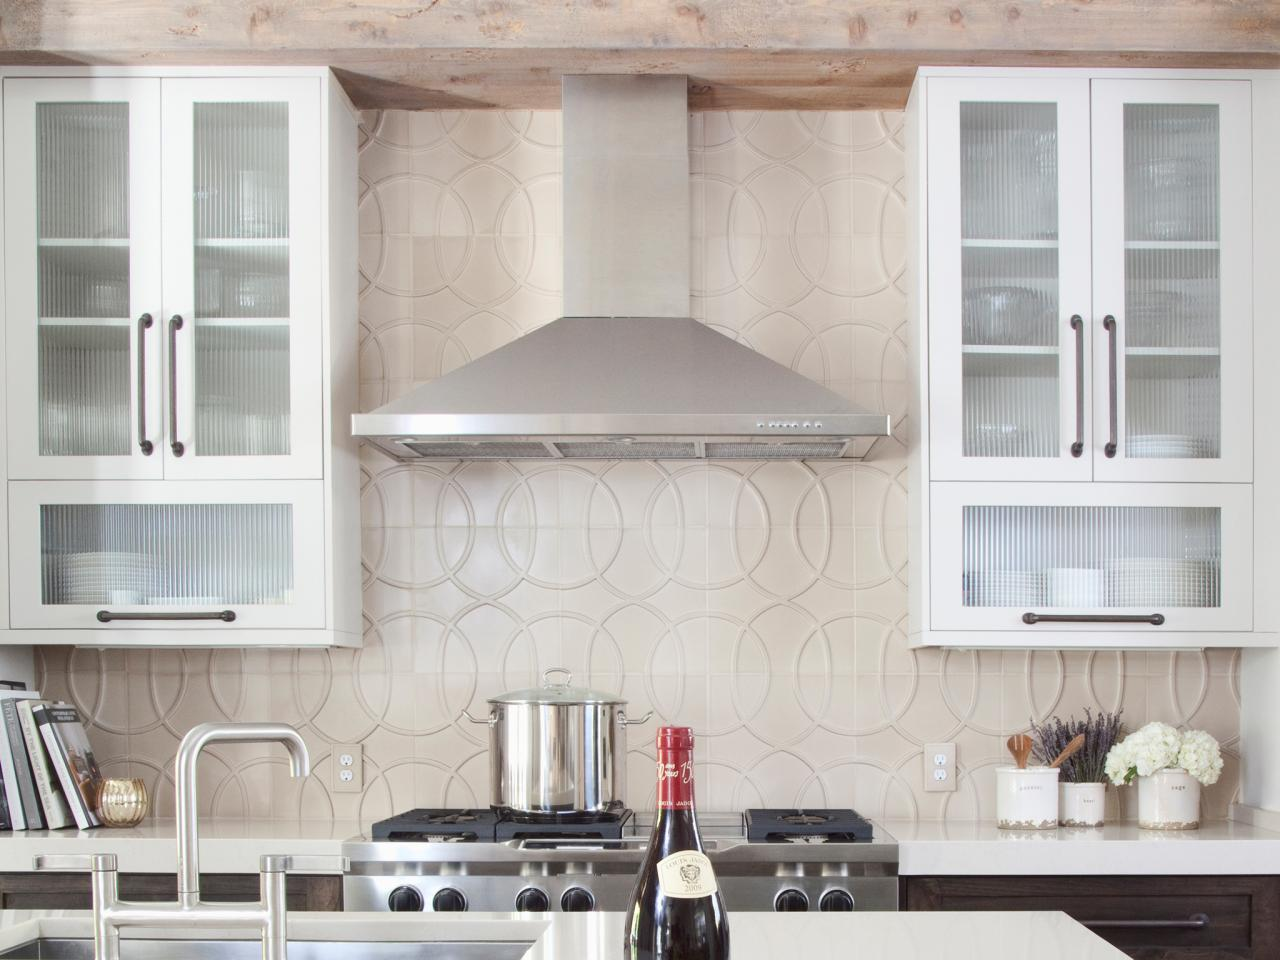 Backsplash Design kitchen backsplash tile ideas | hgtv